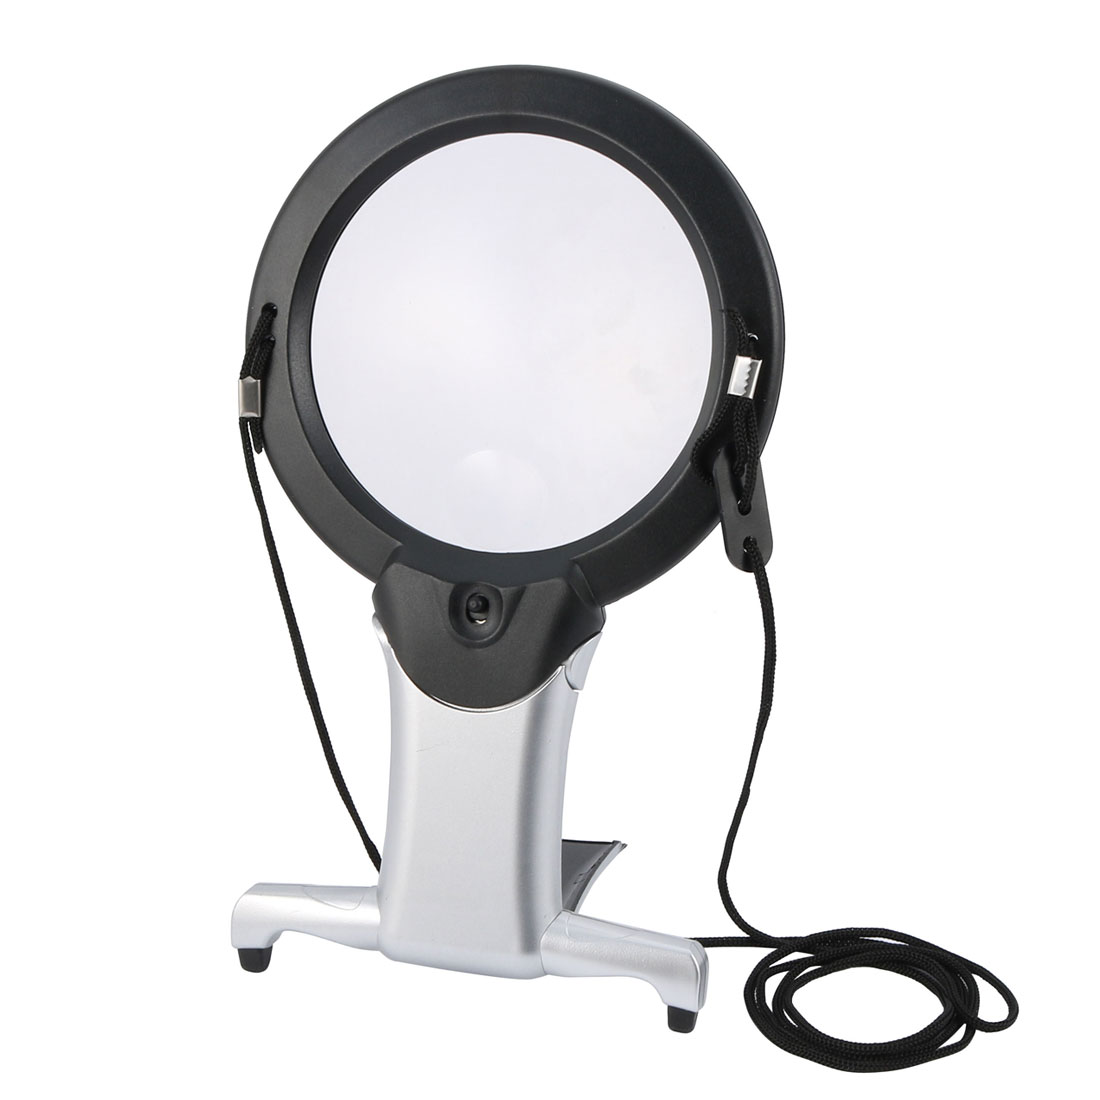 11B-1 LED Suspended Type Desktop Dual- Purpose Magnifier Magnifying Glass